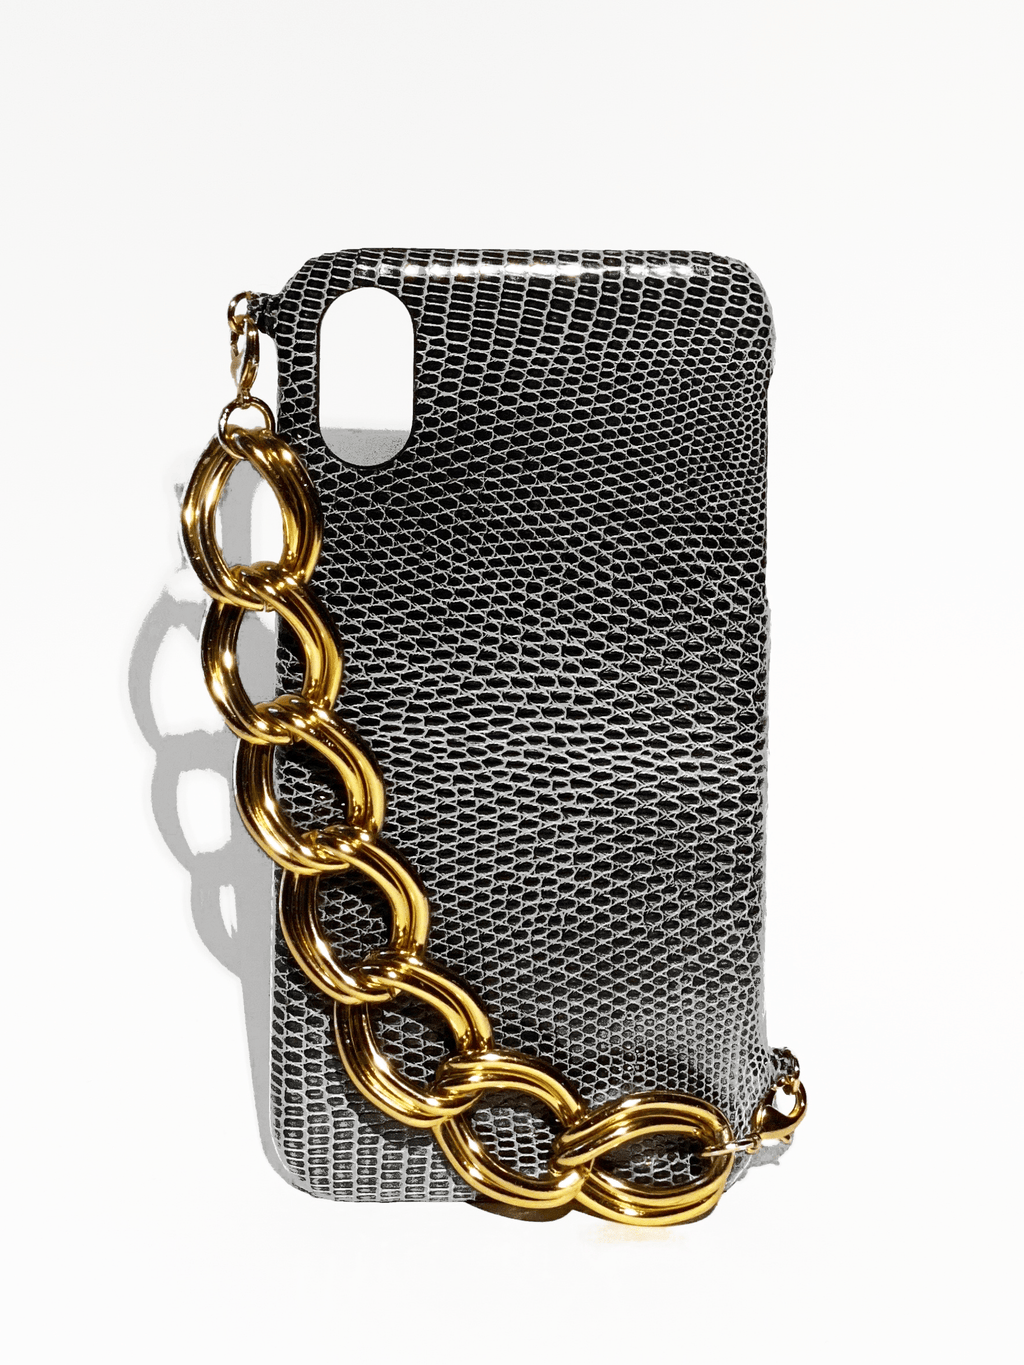 iphone leather case croco, white, black, fashion, upcycled leathergoods